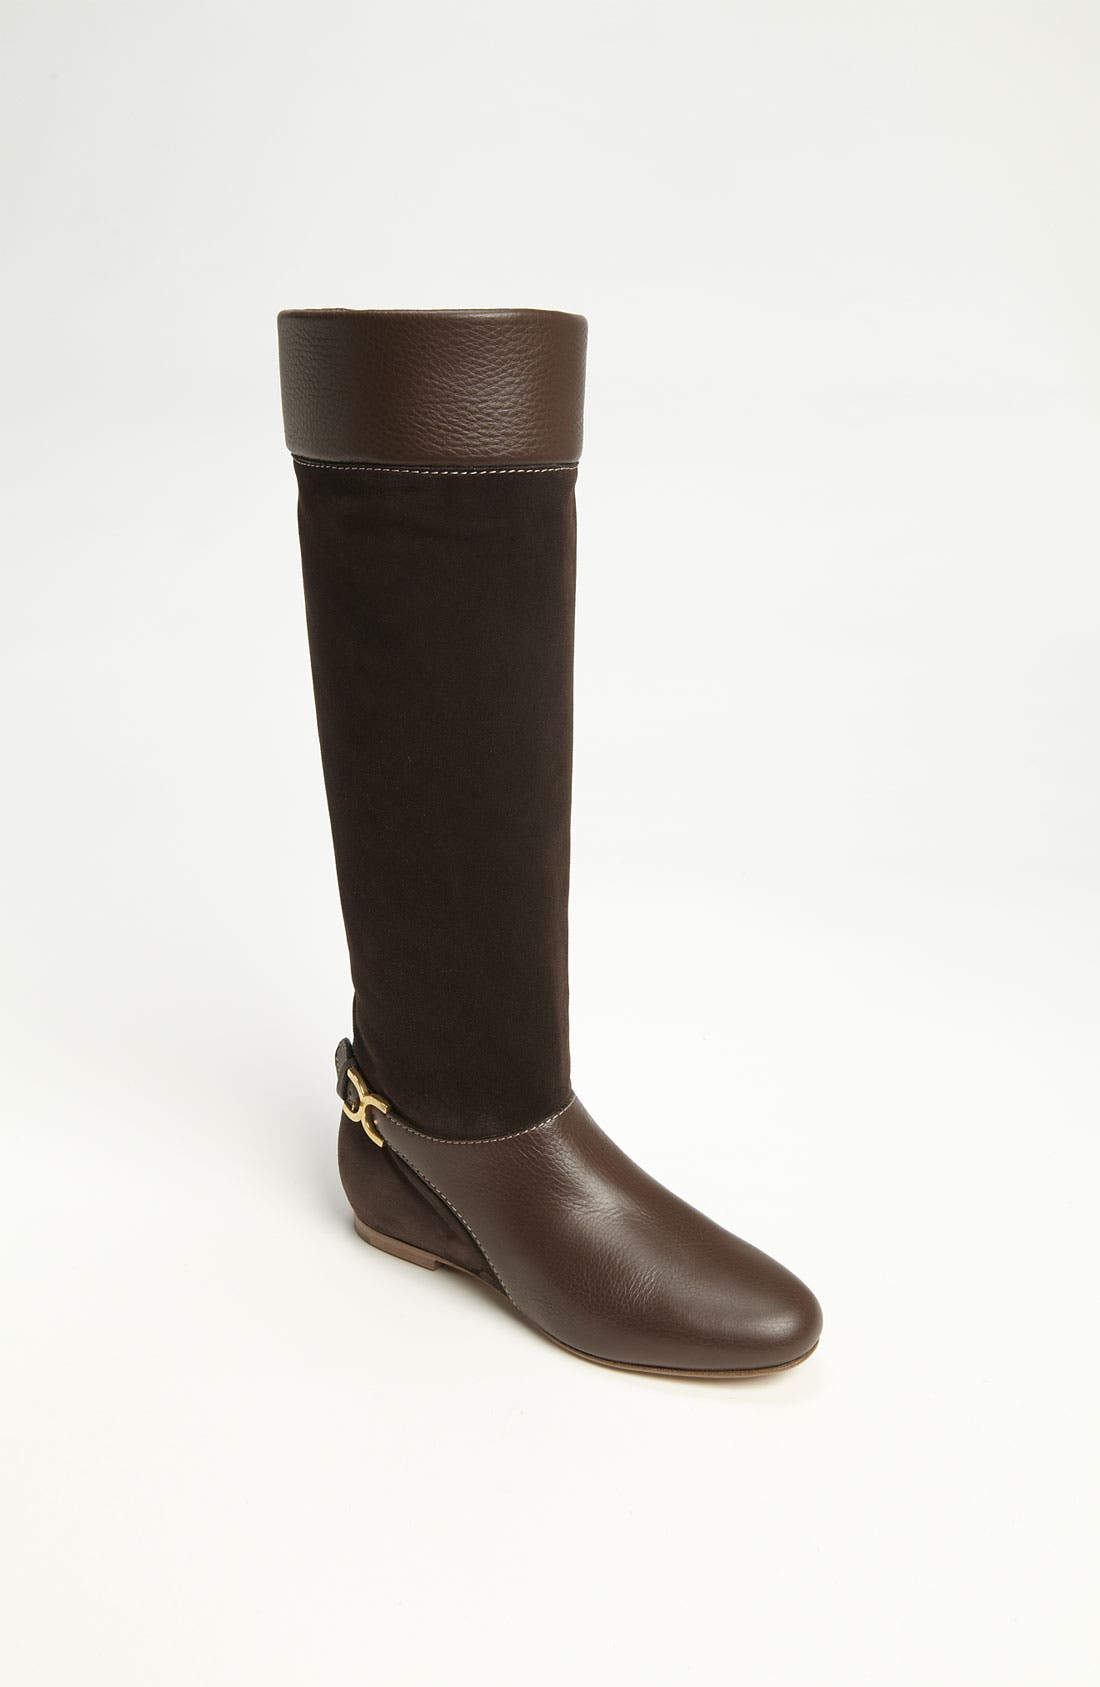 Alternate Image 1 Selected - Chloé Tall Buckle Boot